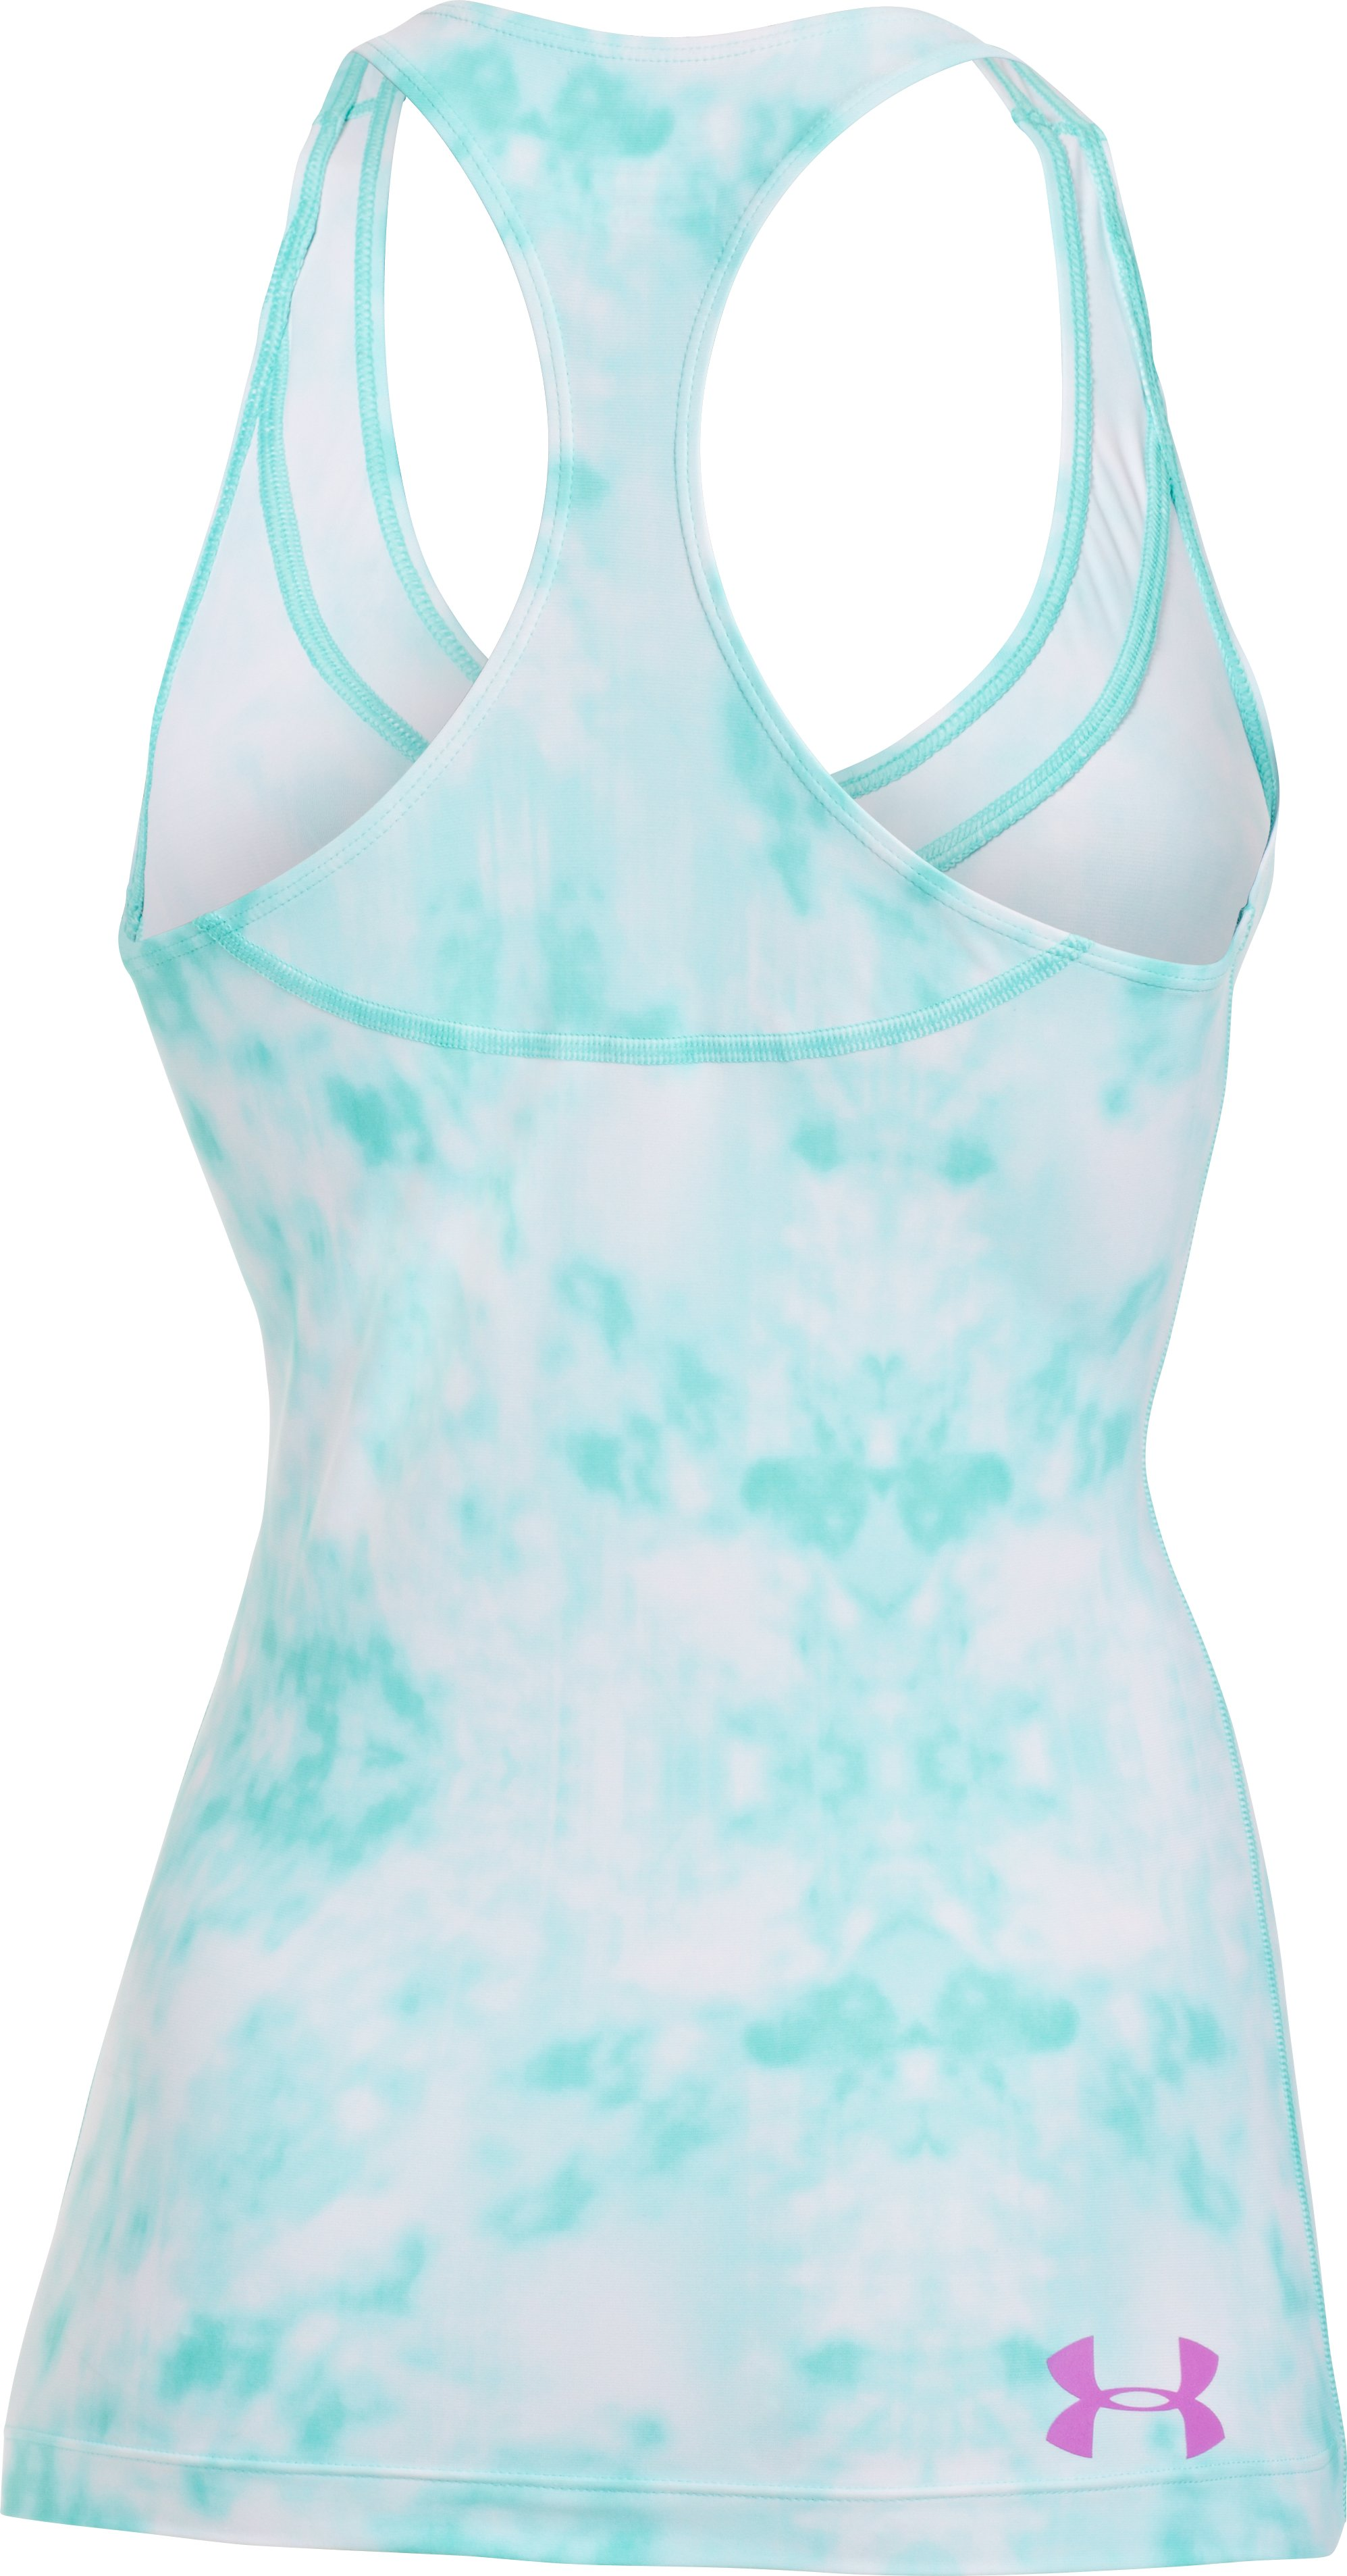 Women's UA Lianne Rash Guard Tank Top, TROPICAL TIDE